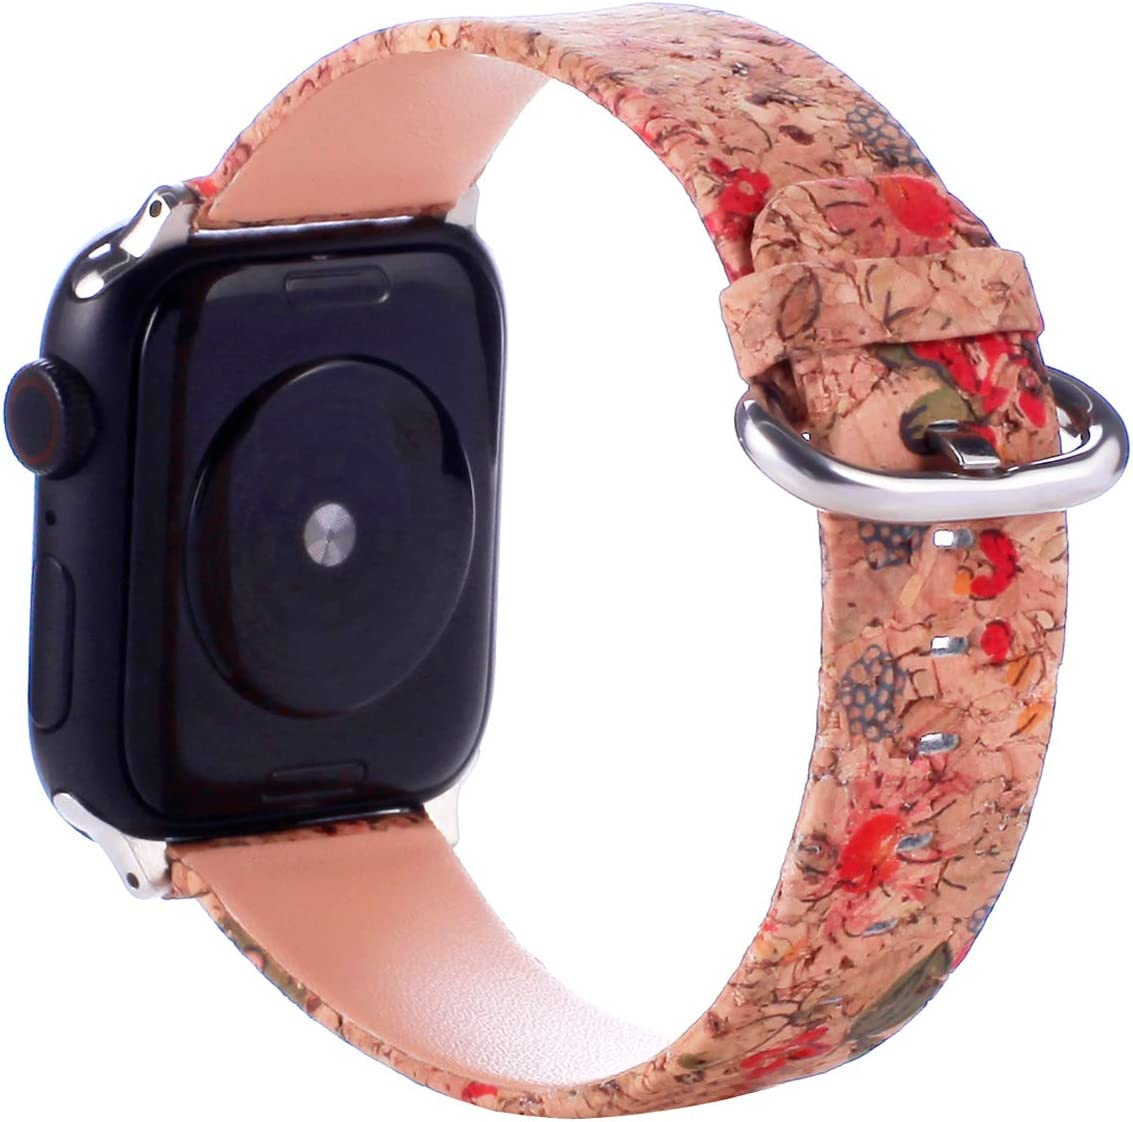 Wooden Leather Band Compatible with Apple Watch Band 38mm 40mm 42mm 44mm, Soft Natural Eco-friendly Replacement Strap Wristband Compatible with iWatch Series 5 Series 4 Series 3 Series 2 Series 1